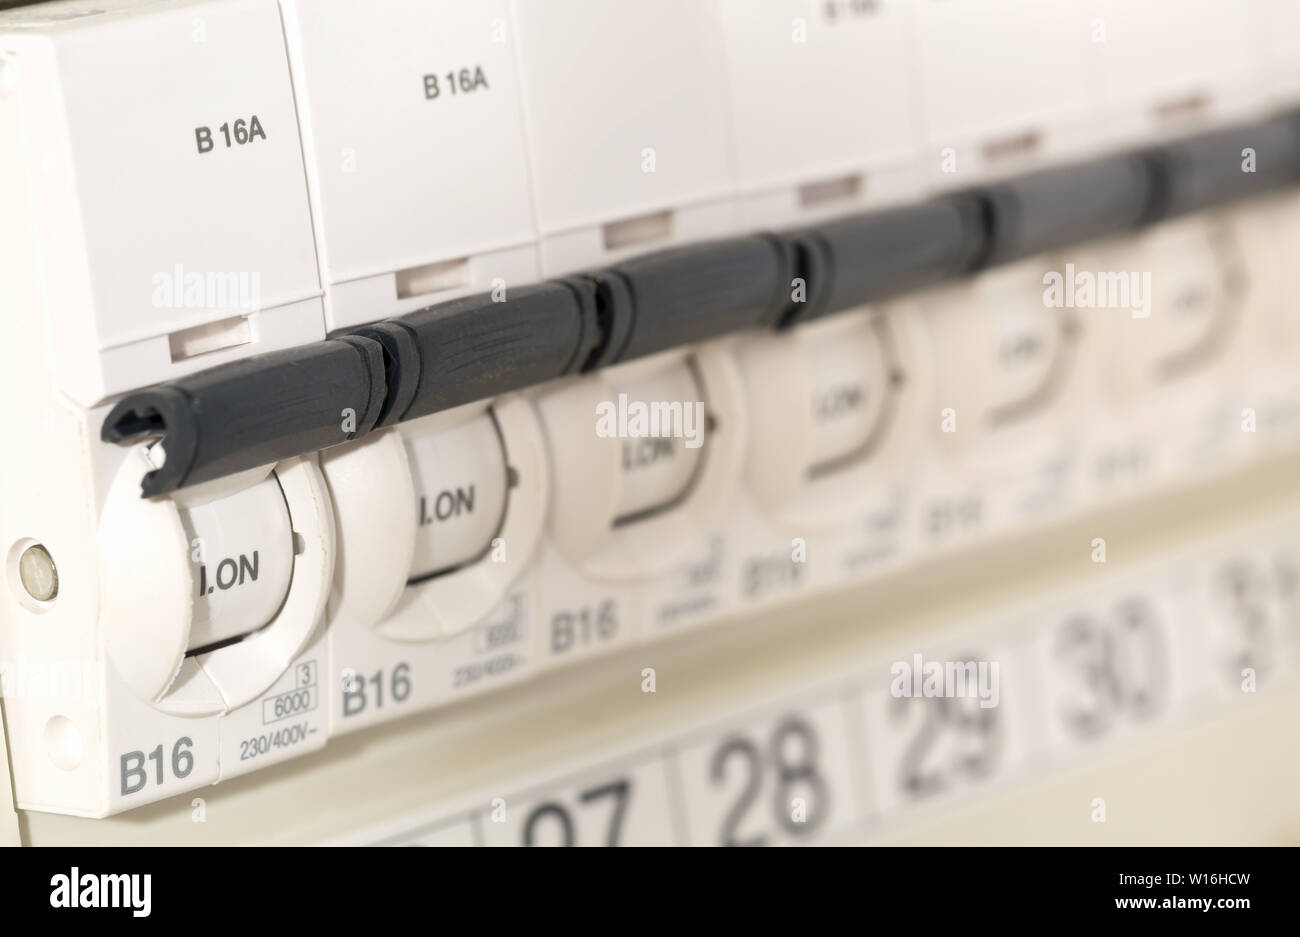 hight resolution of electric circuit breaker fuse box in private home close up with selective focus stock image